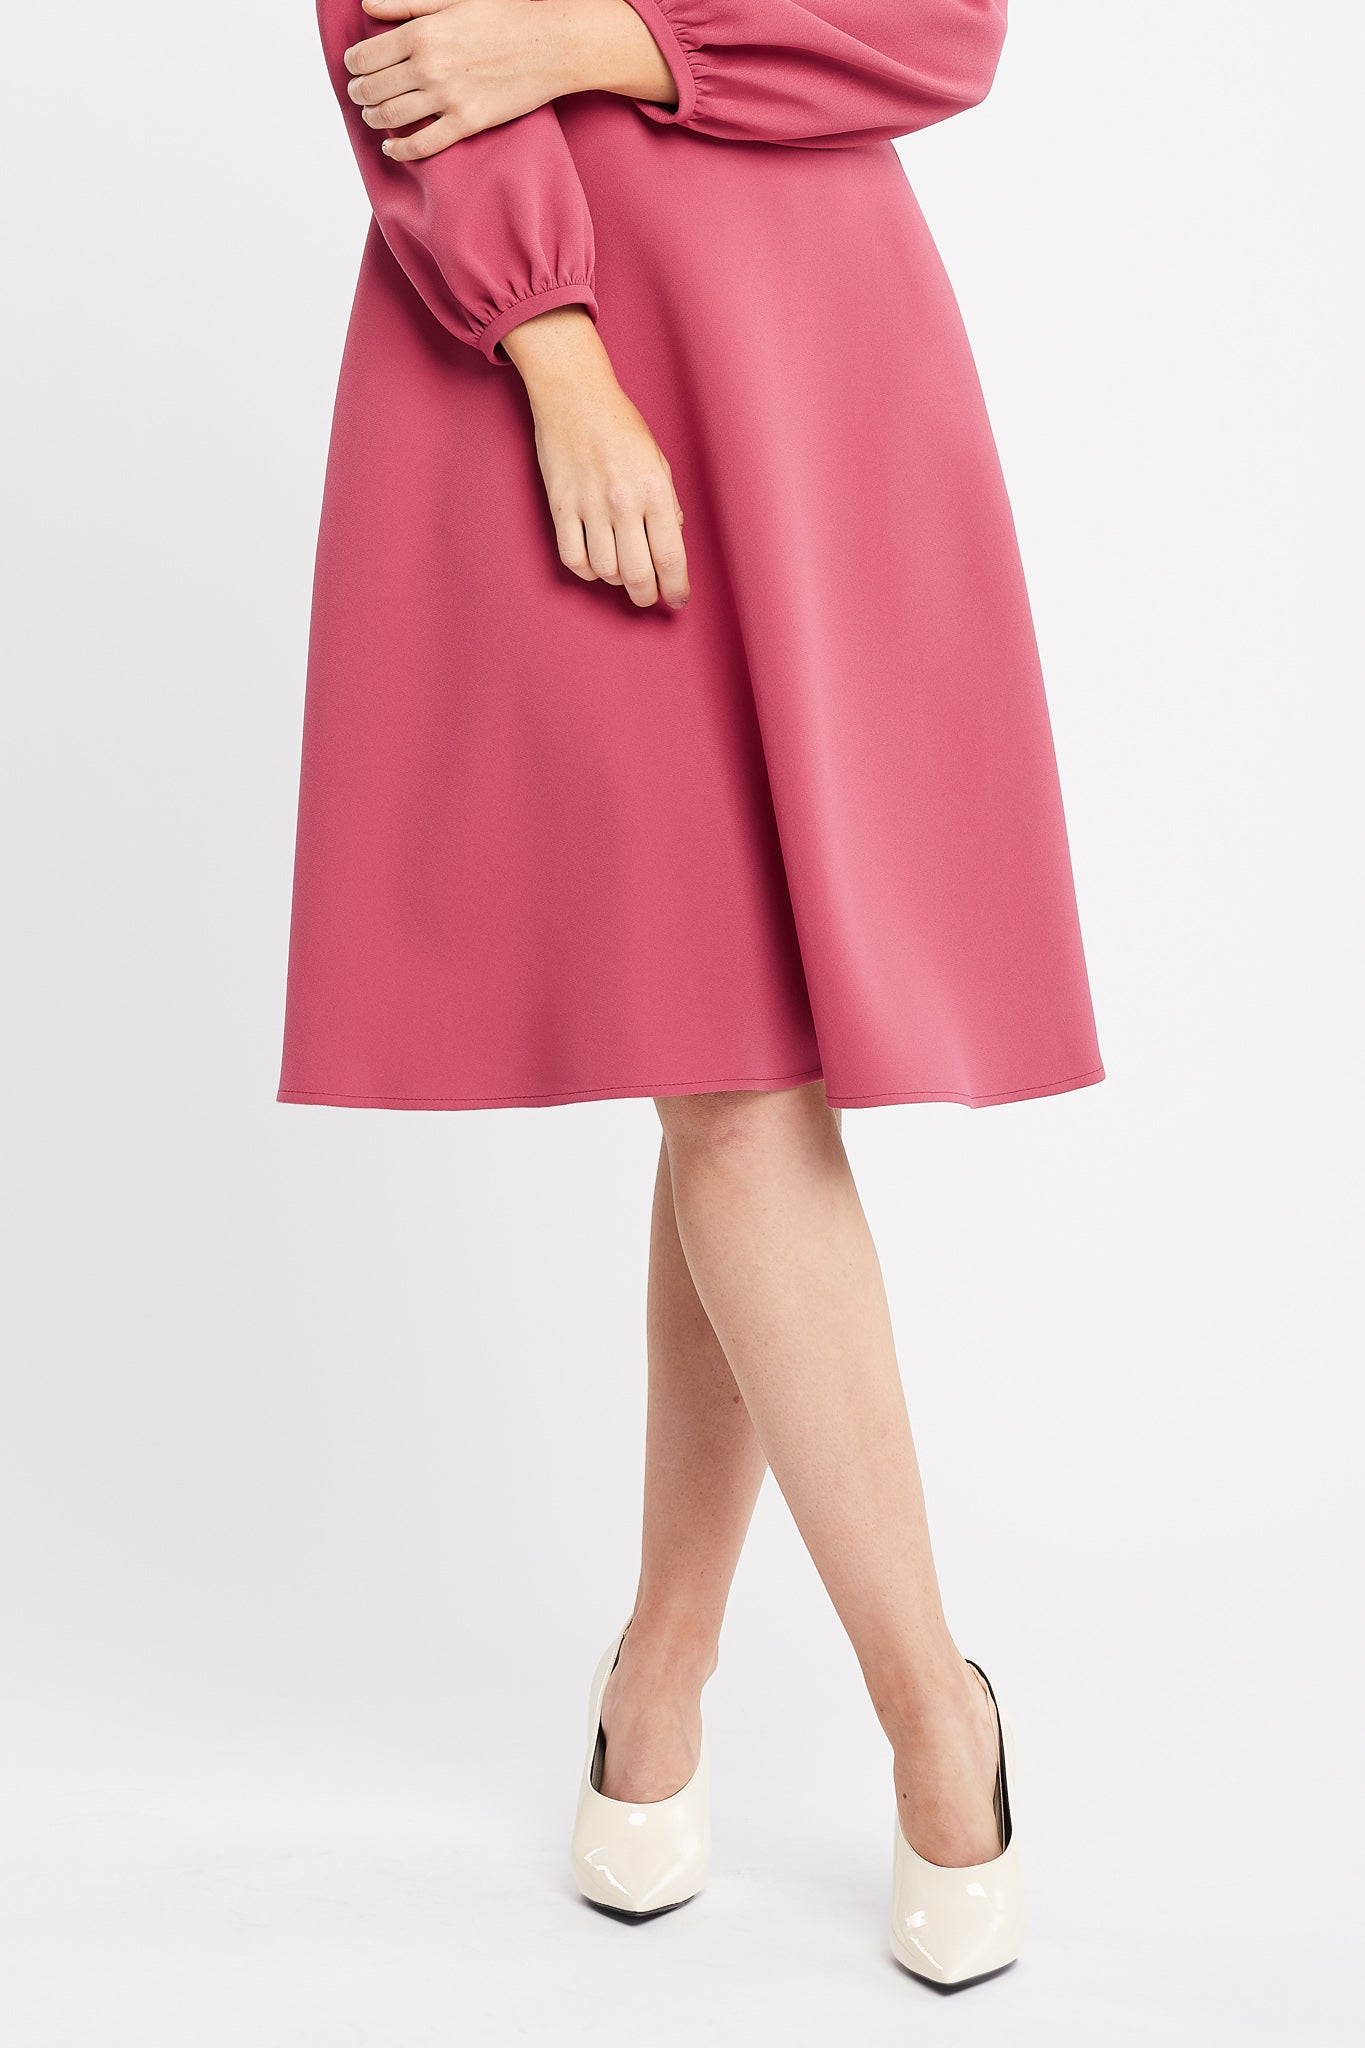 Mia Long Sleeve Flared Skirt Pink Work and Cocktail Dress